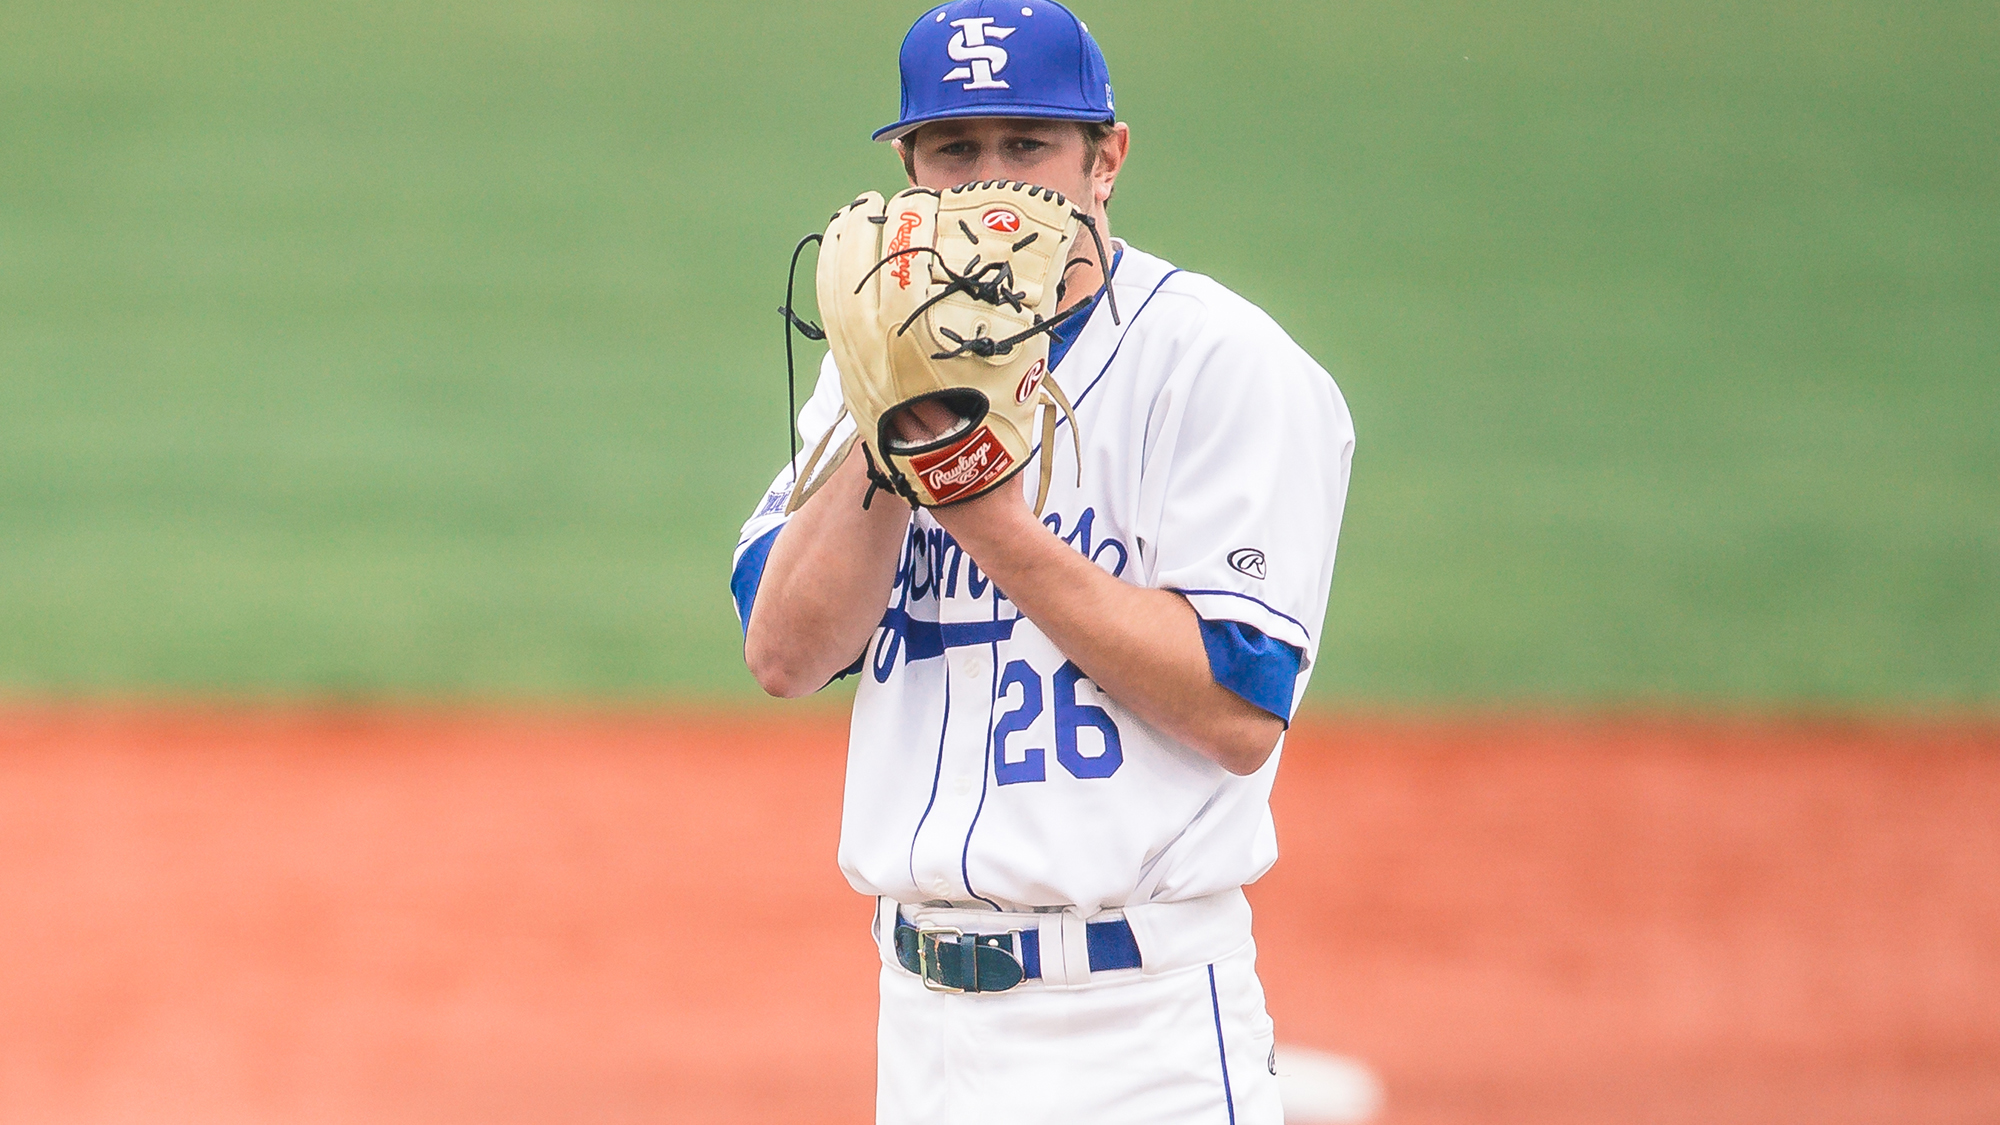 Great Lake Canadians alum Tyler Whitbread (Camlachie, Ont.) hurled eight scoreless innings and picked up a win in a start for the Indiana State Sycamores. Photo: Indiana State Athletics.